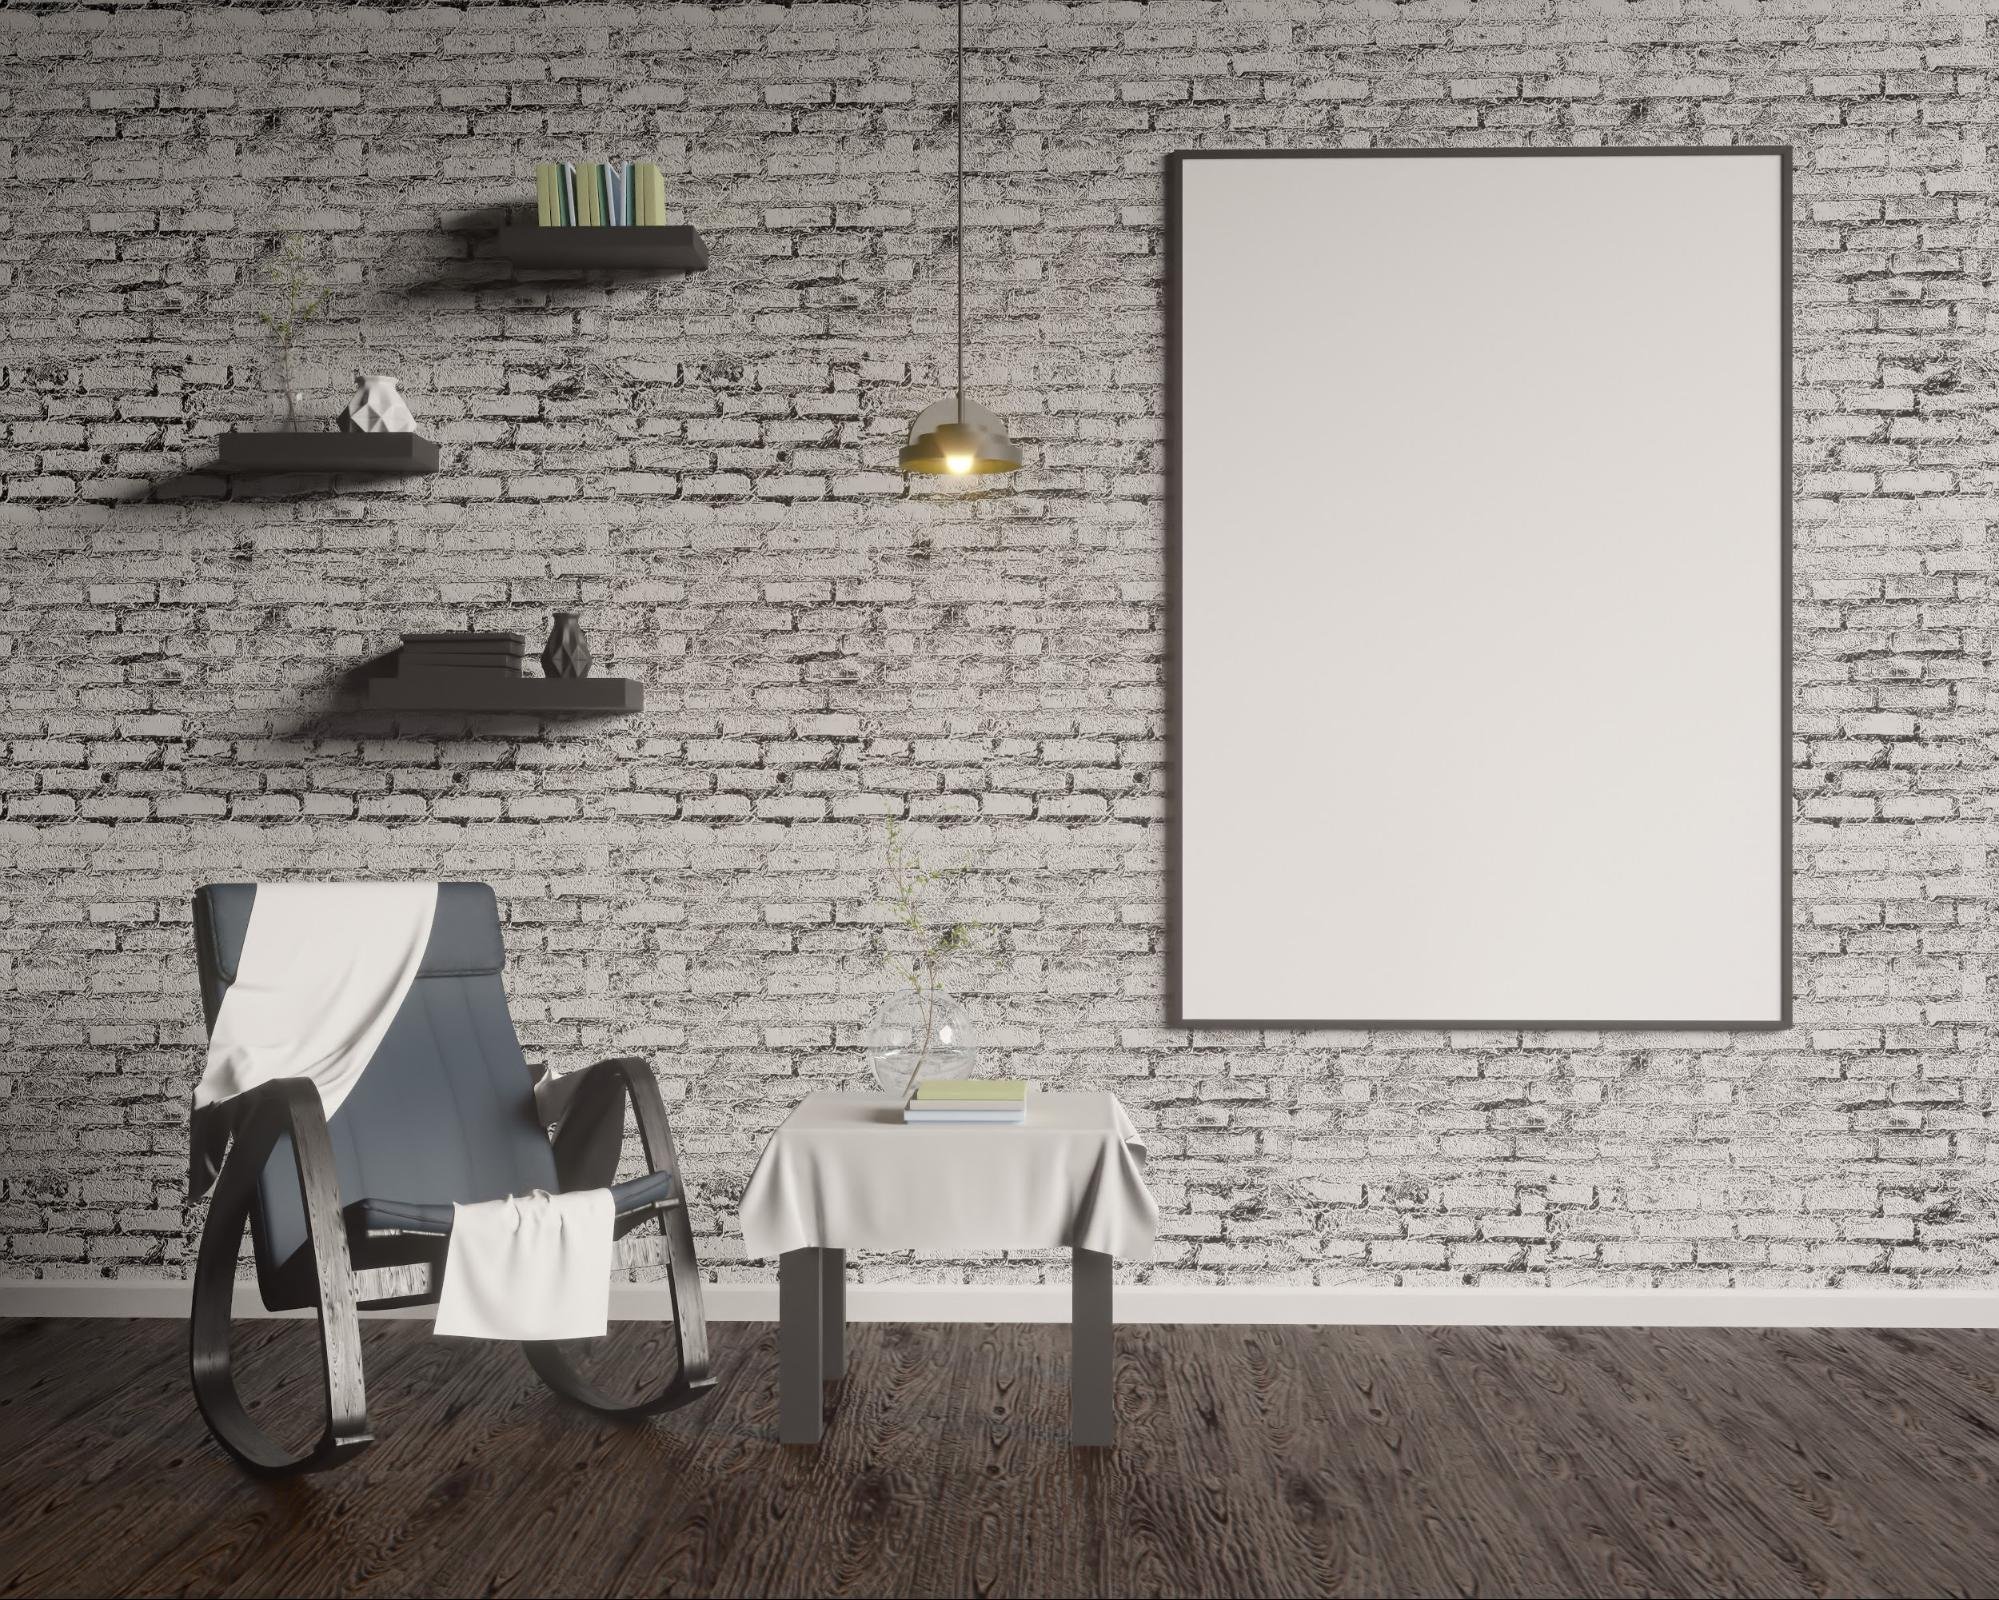 The key elements of an industrial style design